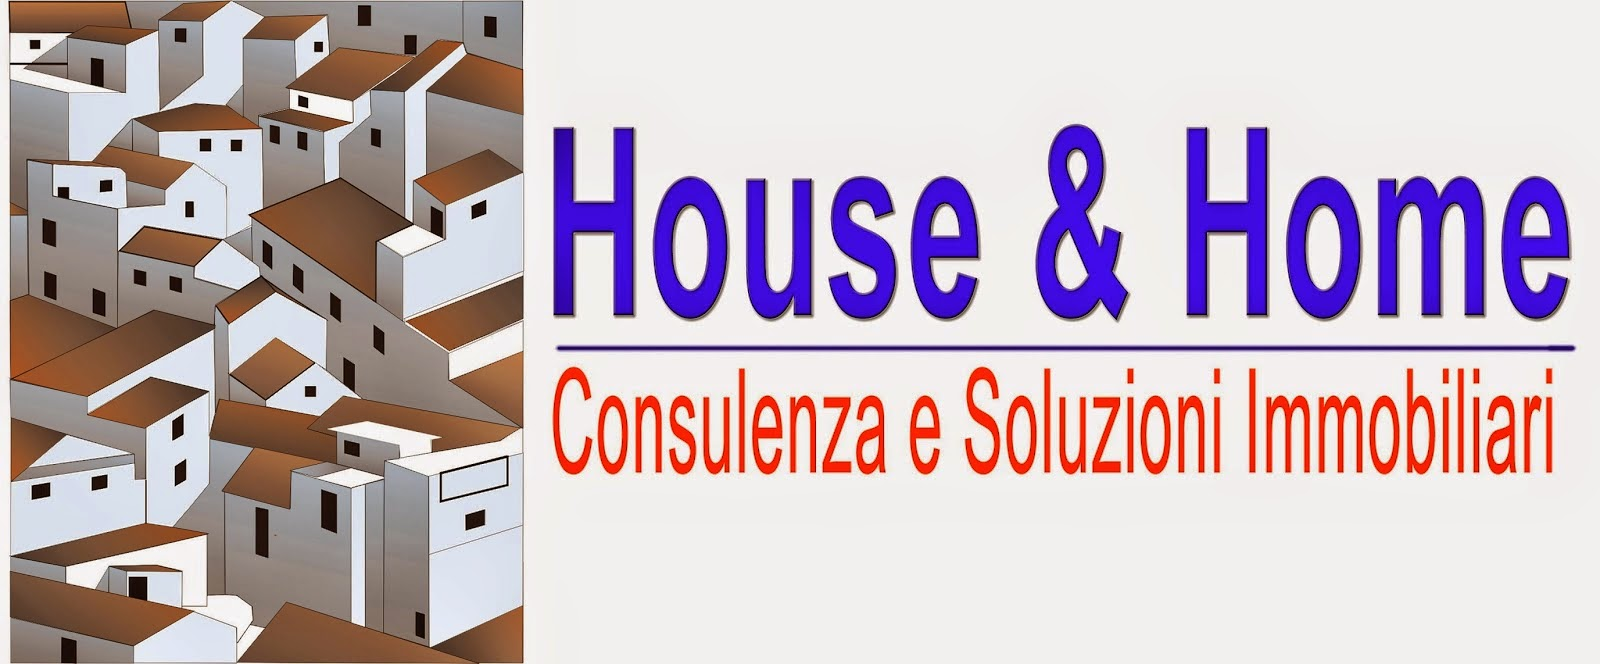 House & Home Immobiliare